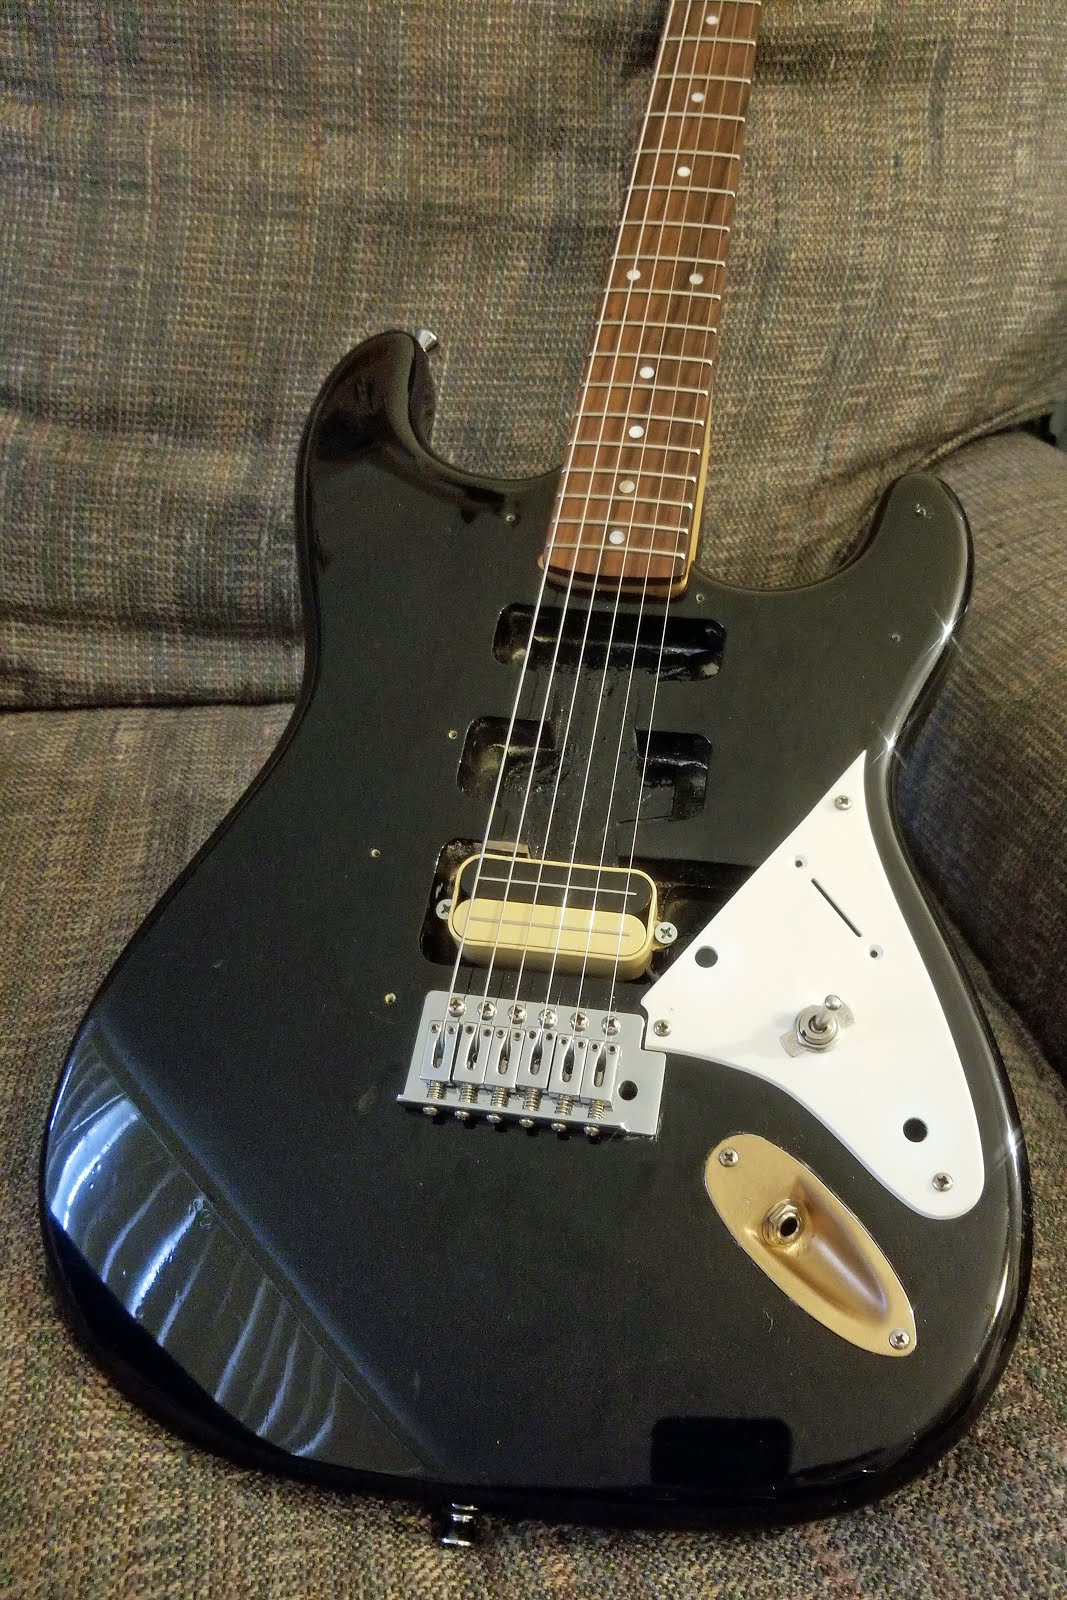 Hotrodded to HELL $30 Strat